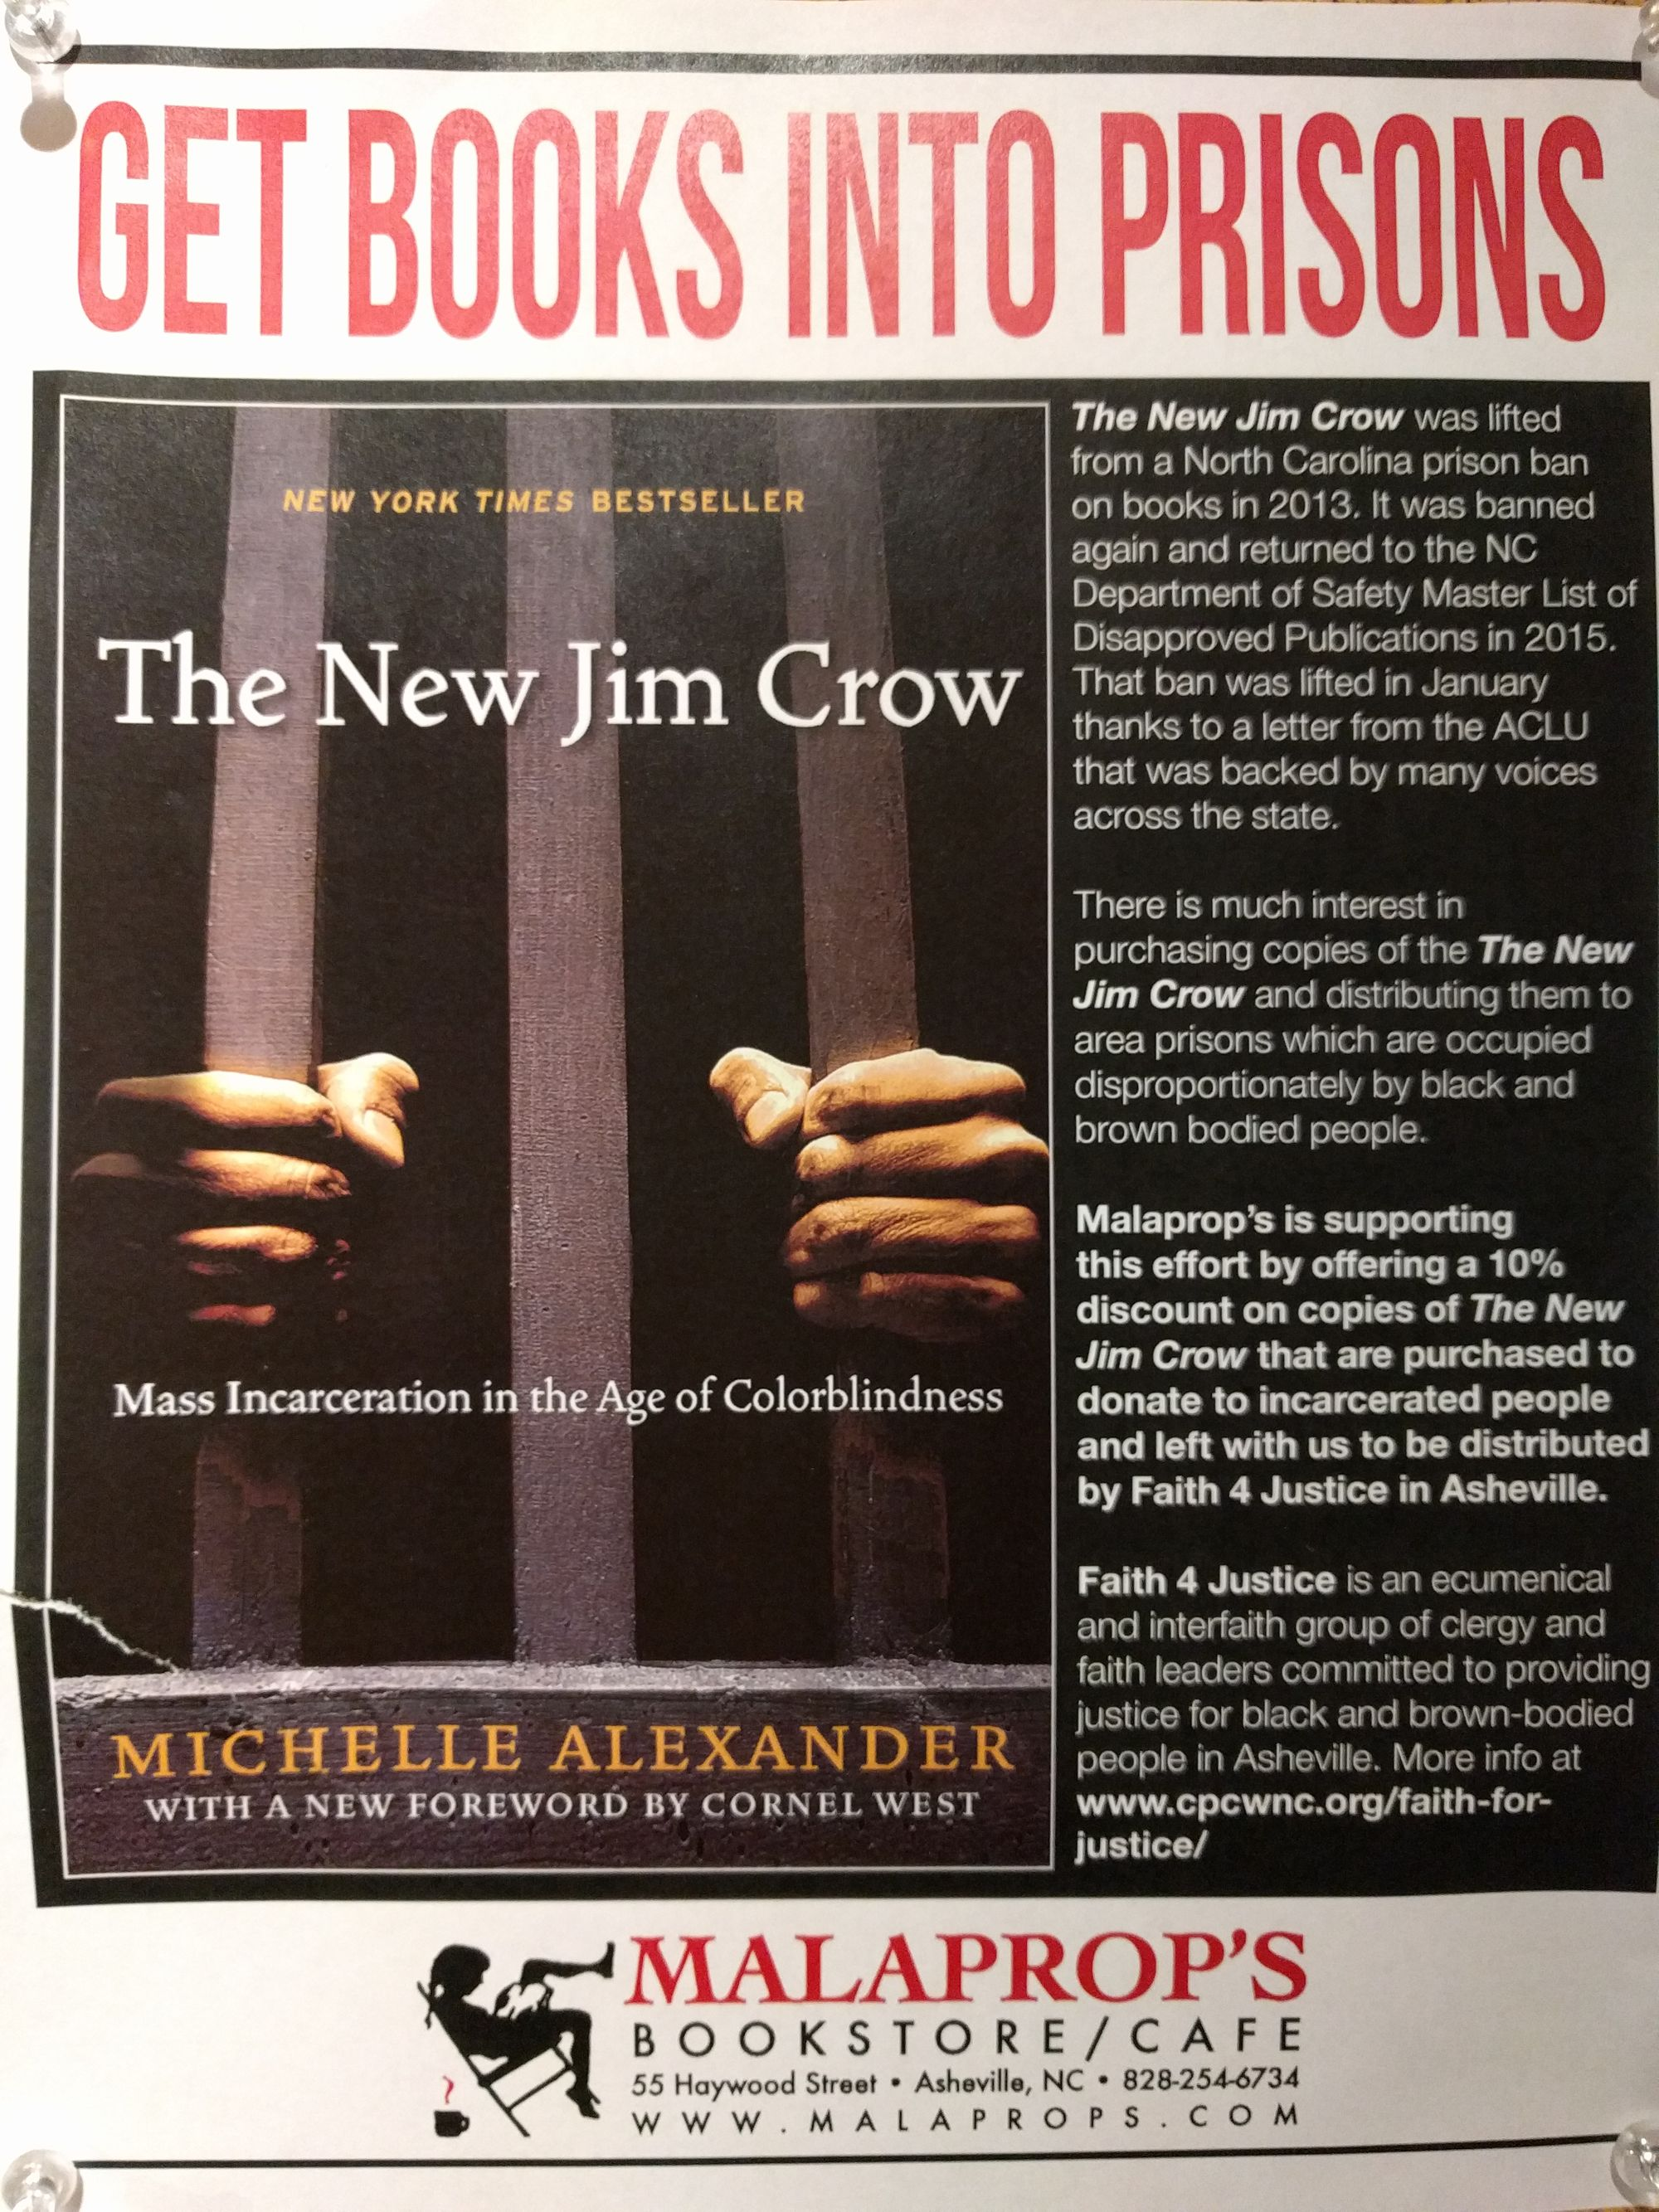 New Jim Crow on its way into NC prisons!